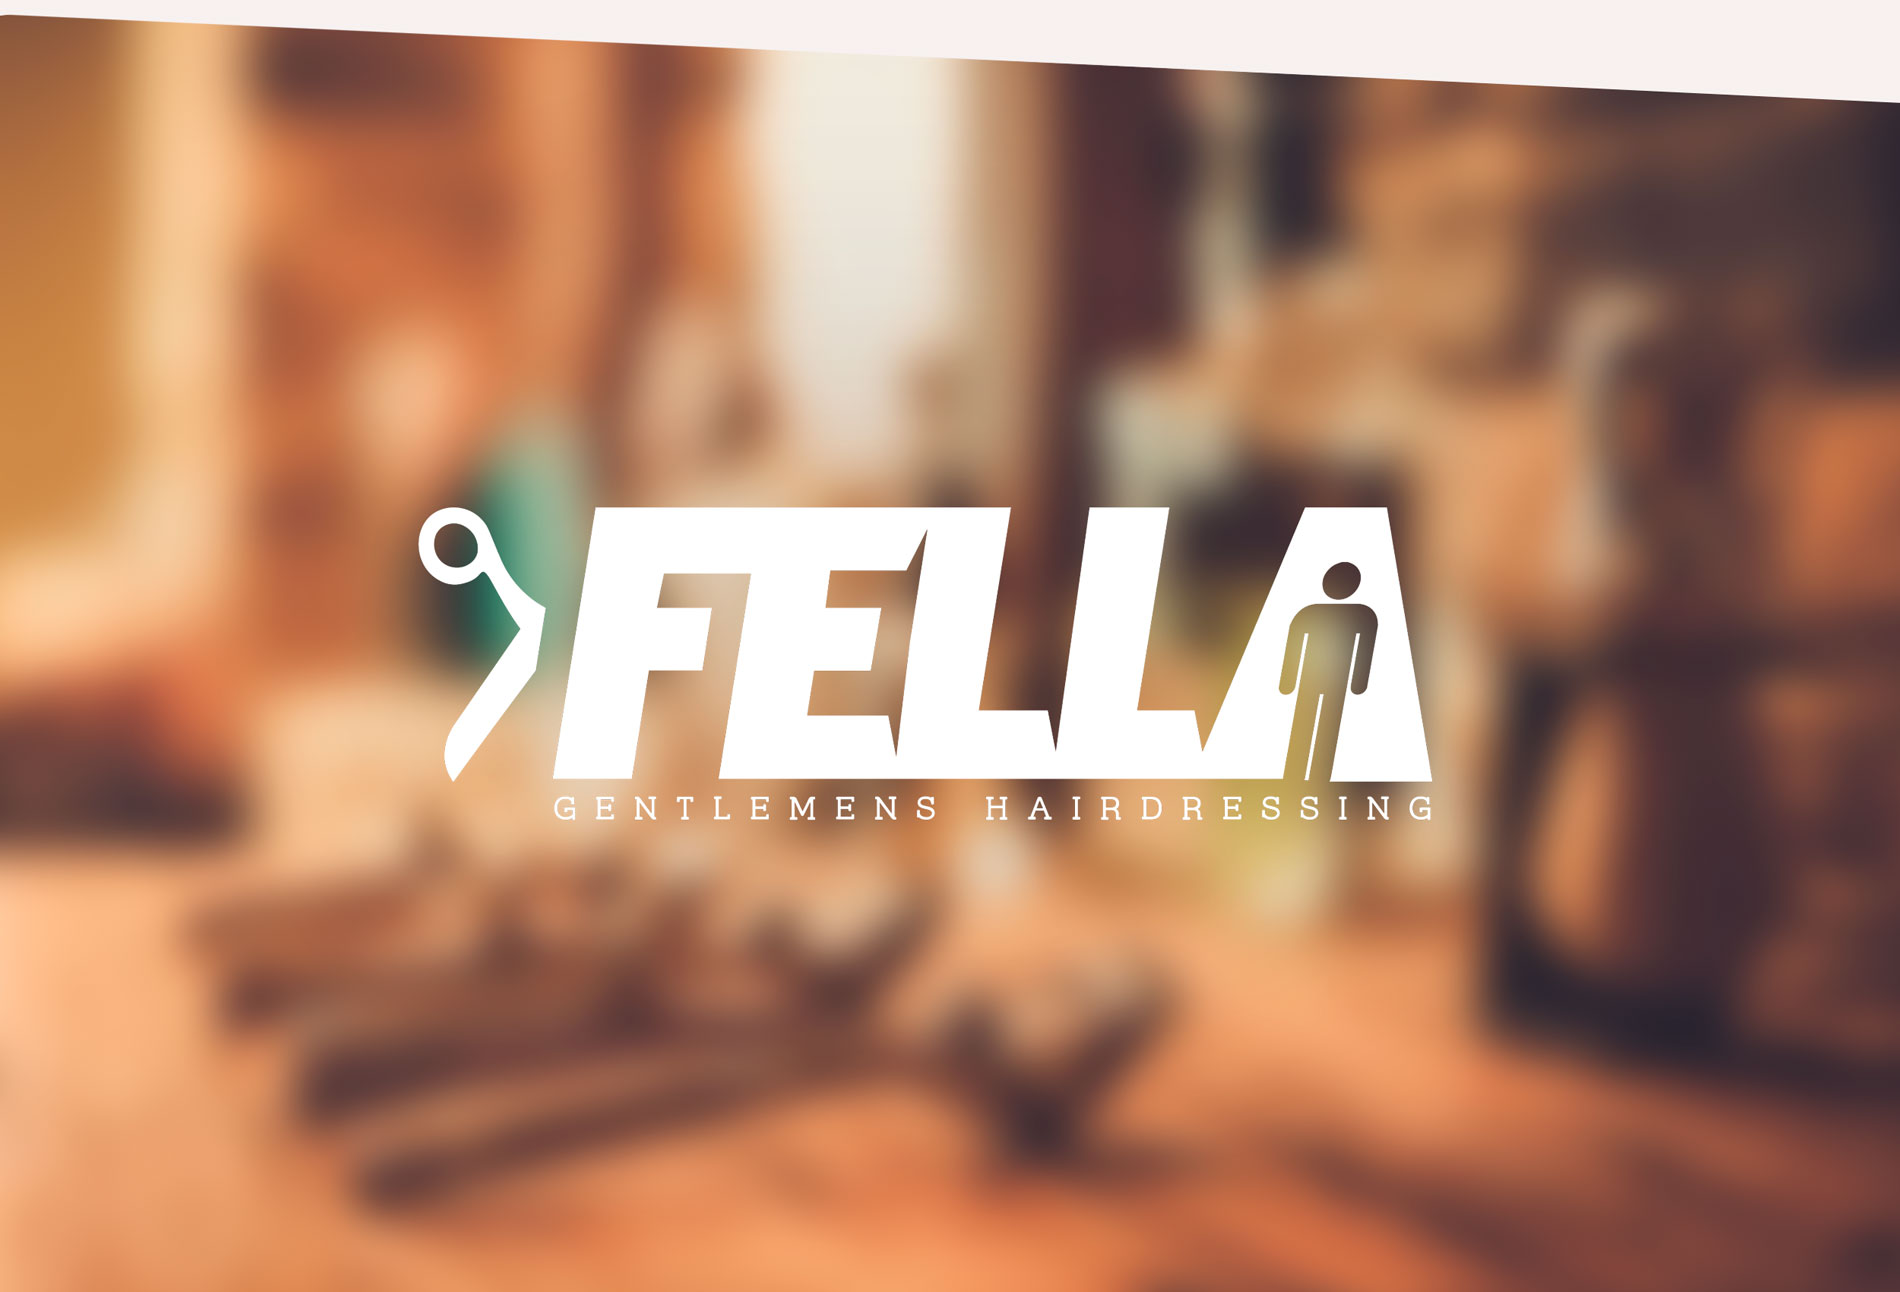 Fella Hair Canterbury logo - design whitstable kent